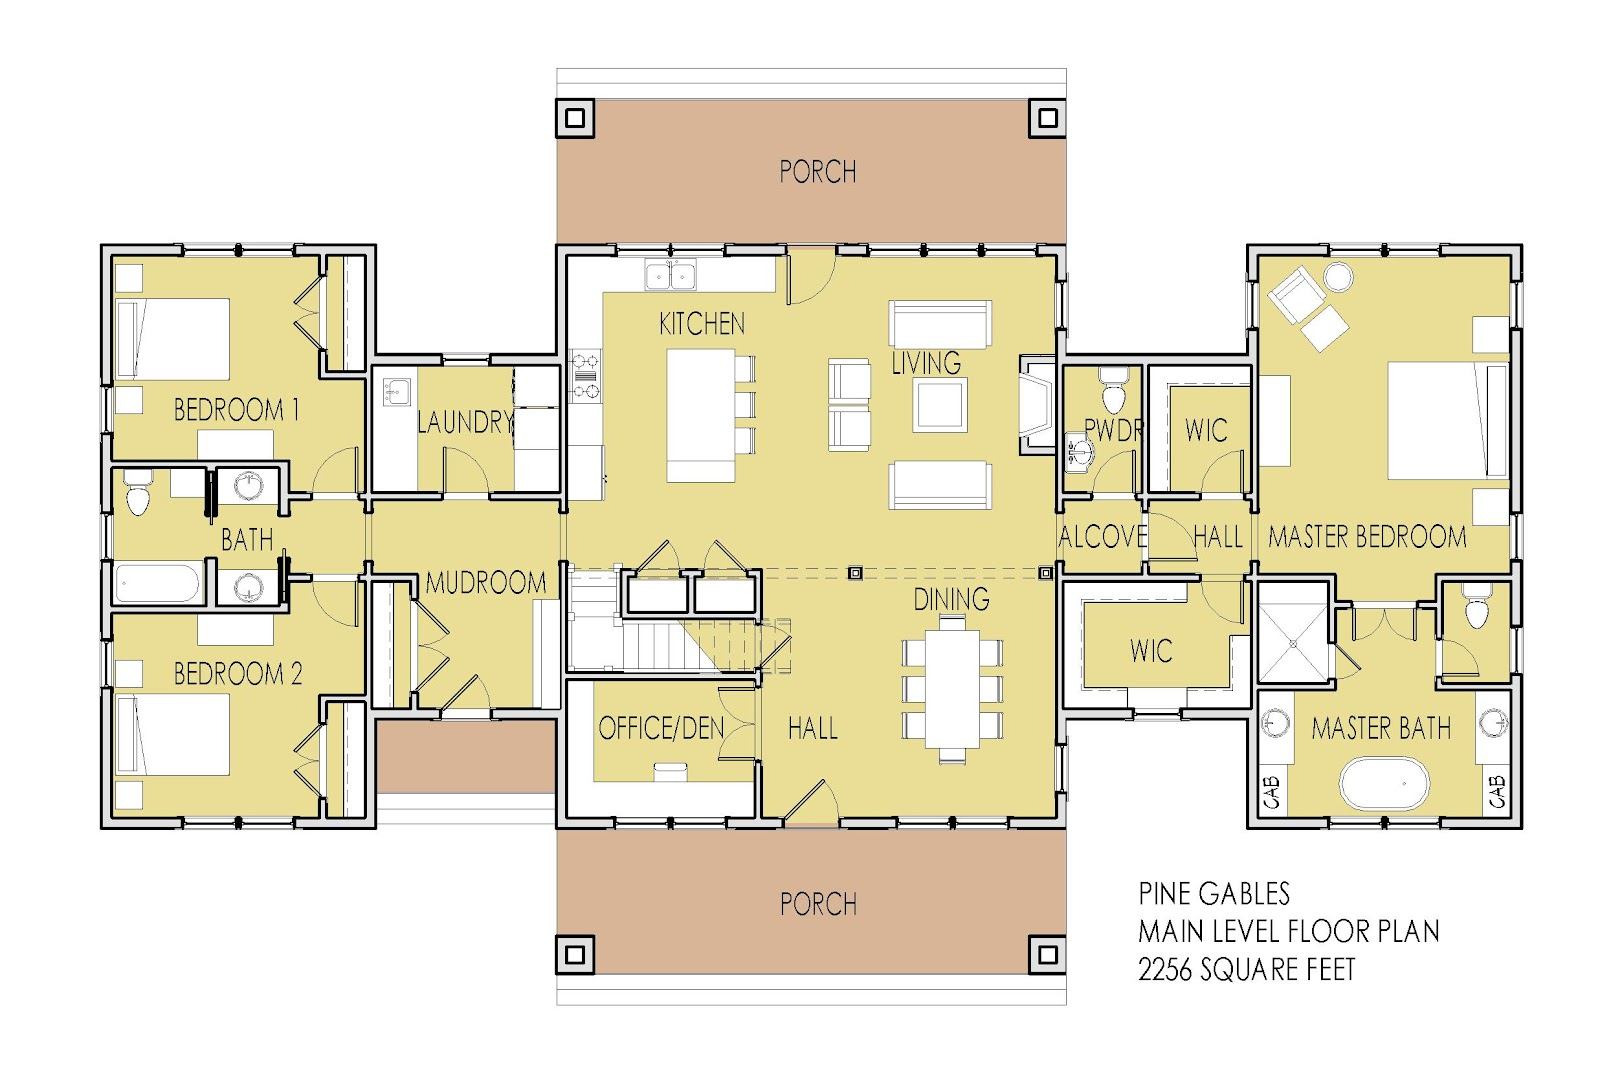 Simply elegant home designs blog new house plan unveiled for 1 level house plans with 2 master suites